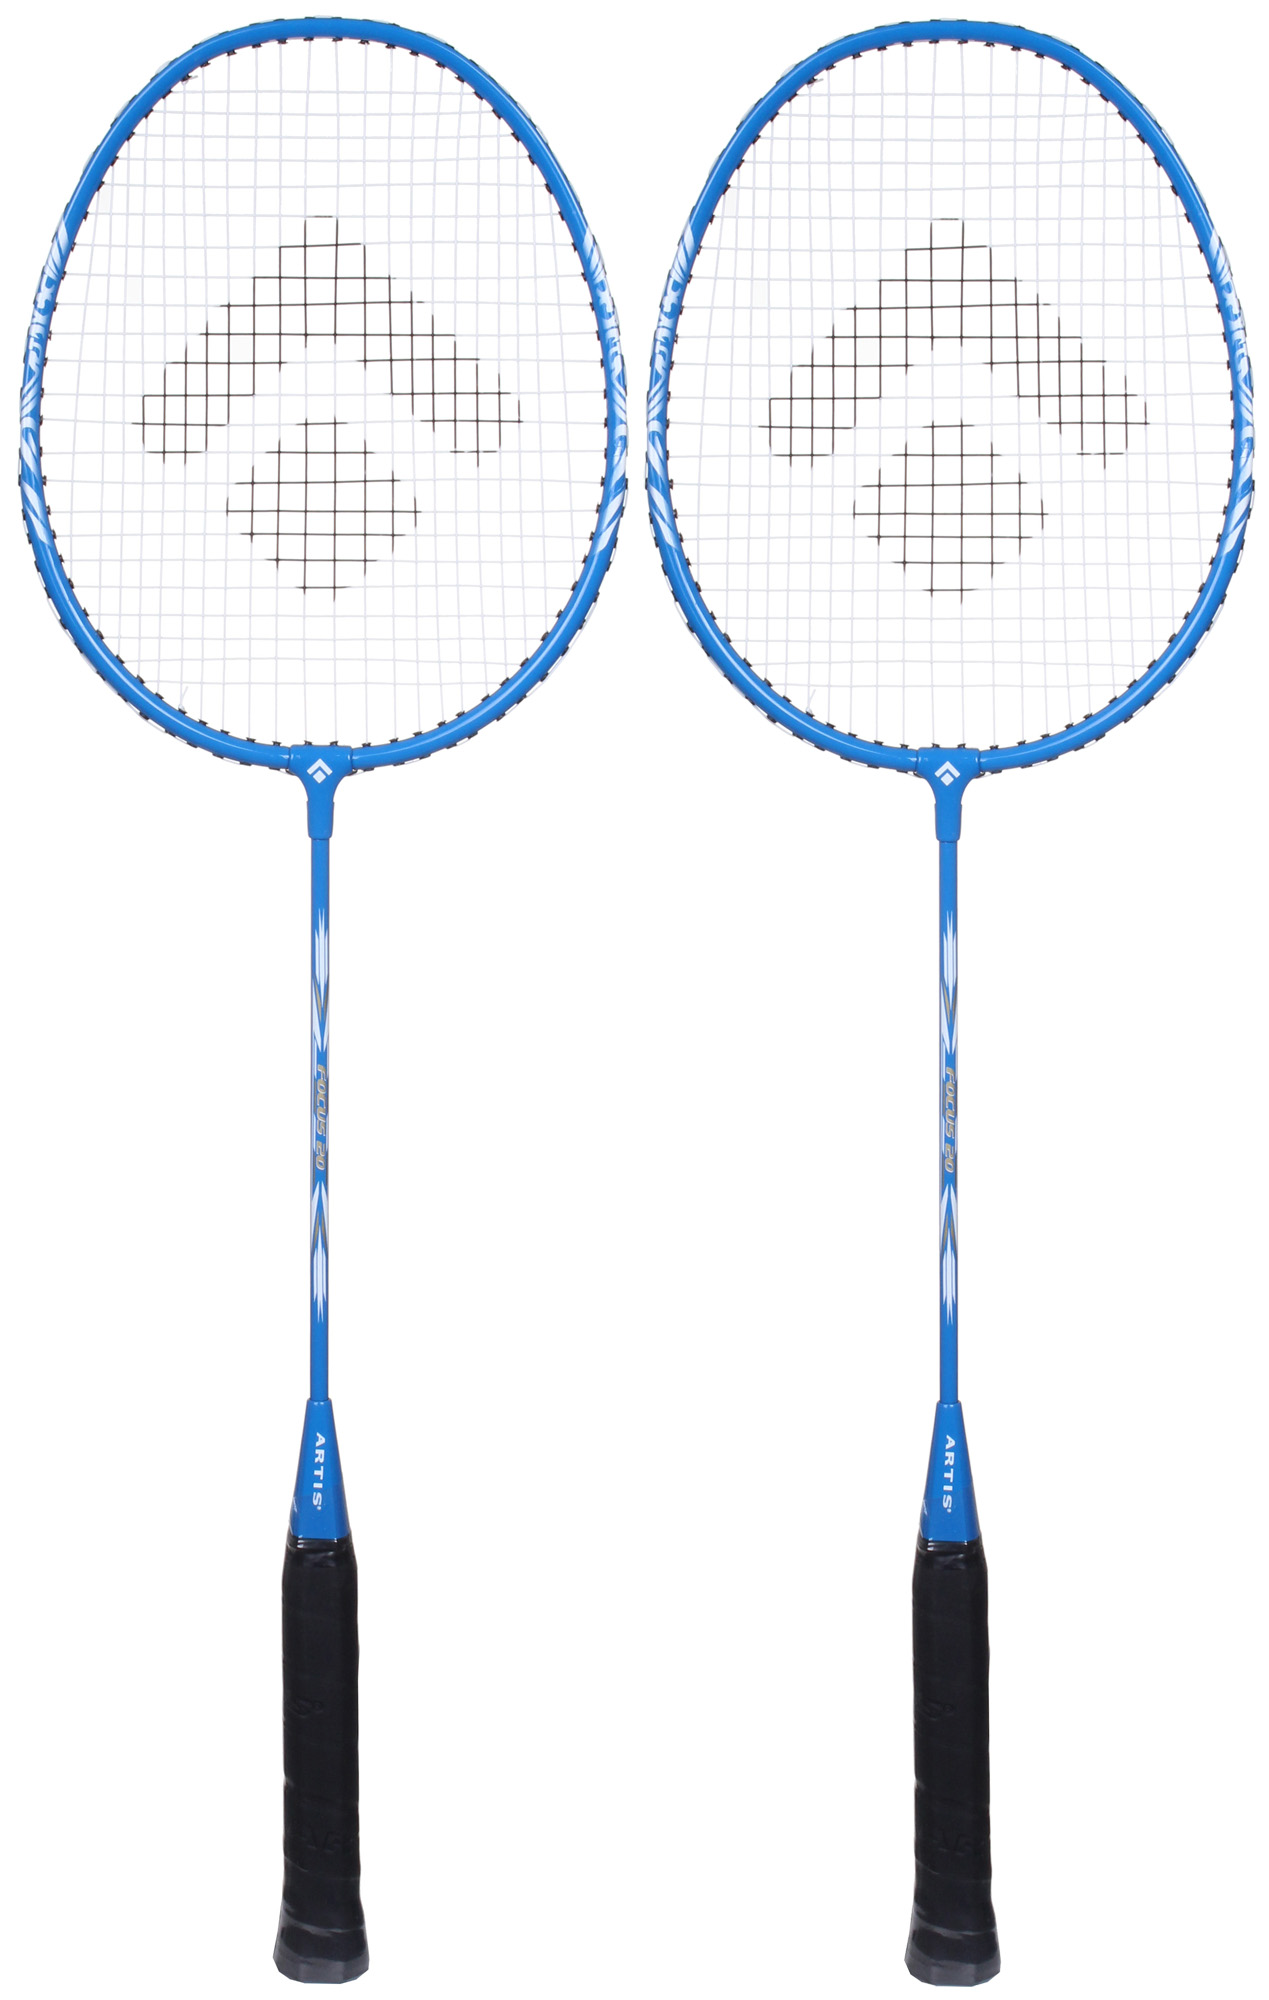 Artis Focus 20 badmintonový set